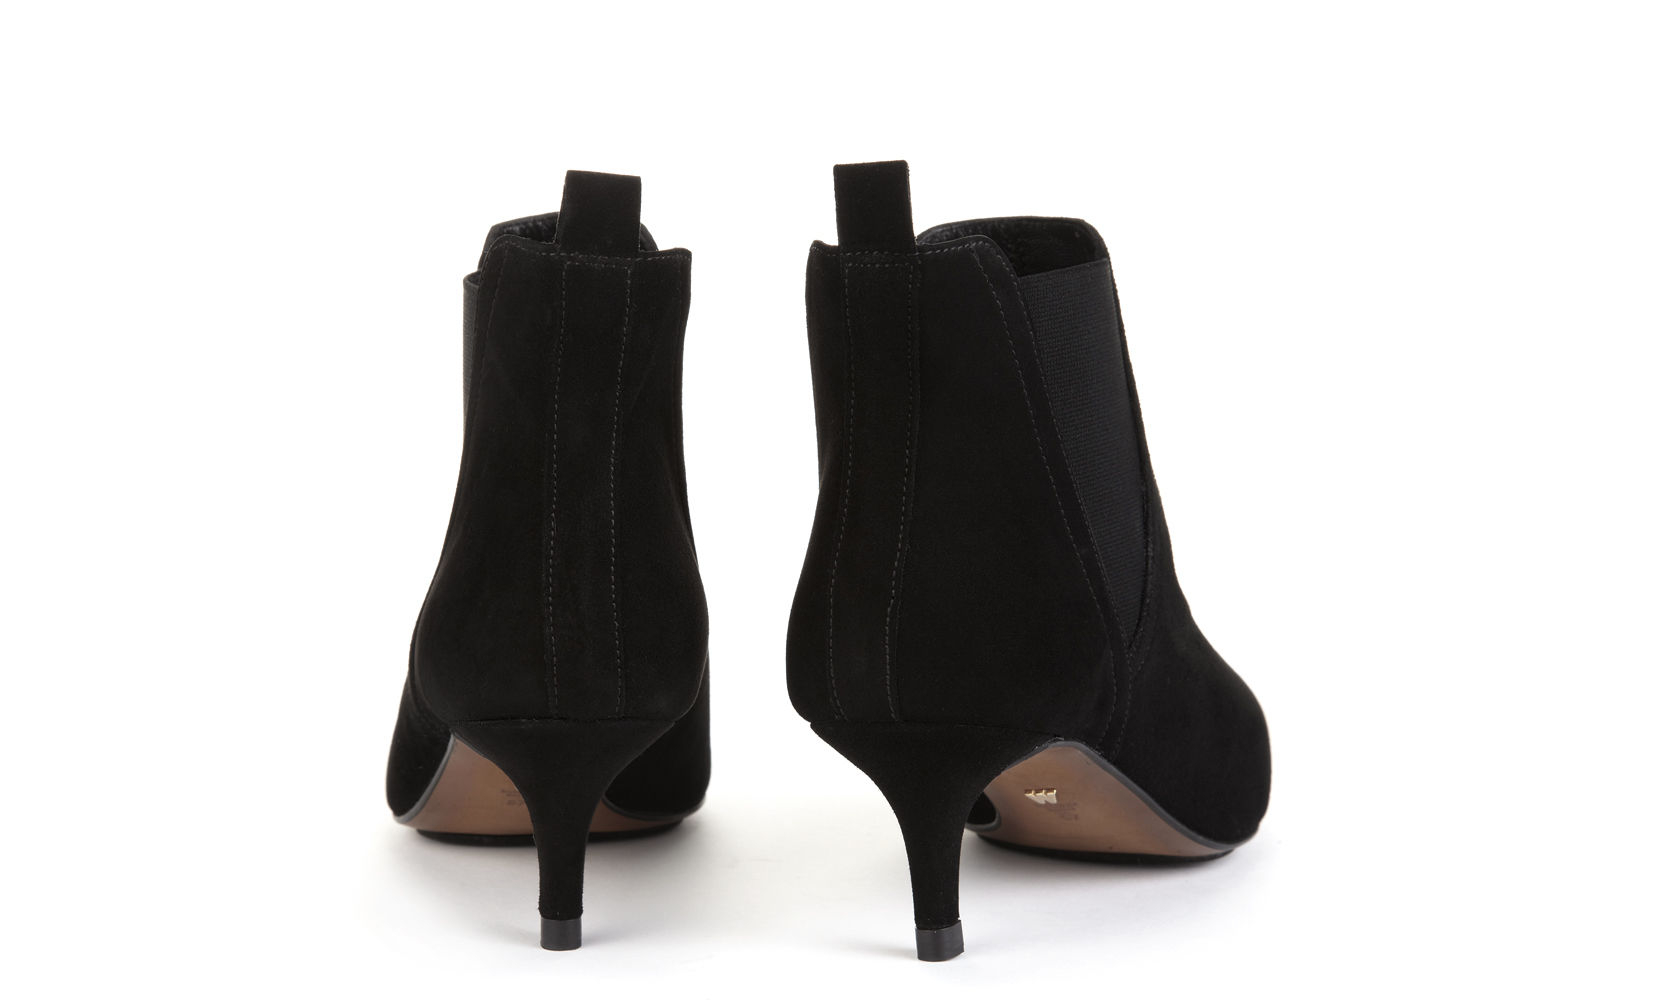 Black Kitten Heel Boots Leather